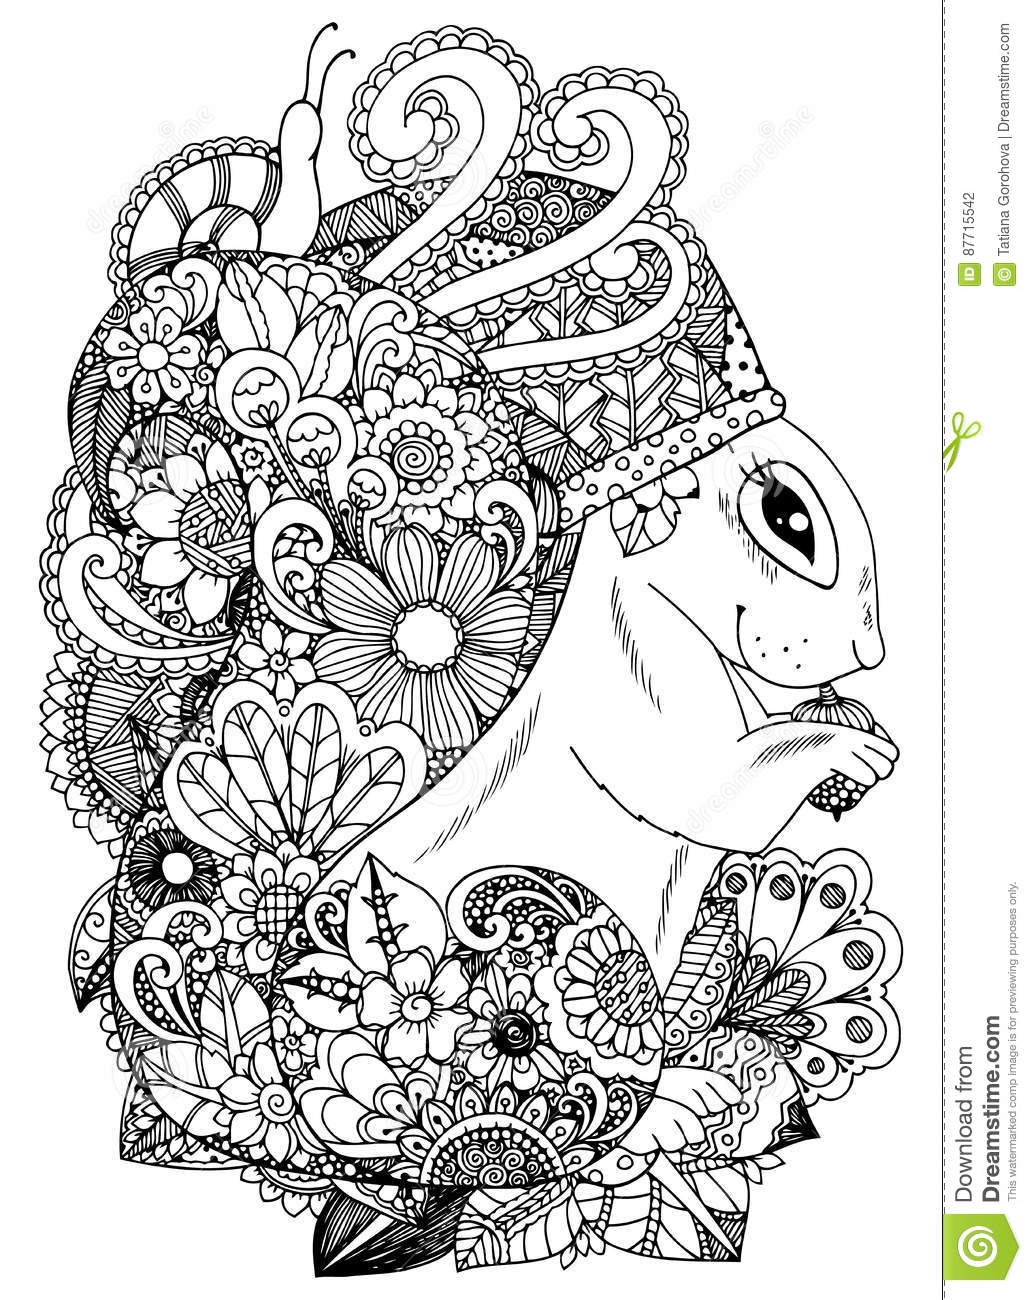 Download Vector Illustration Zentangl Squirrel With Flowers Doodle Drawing Coloring Page Anti Stress